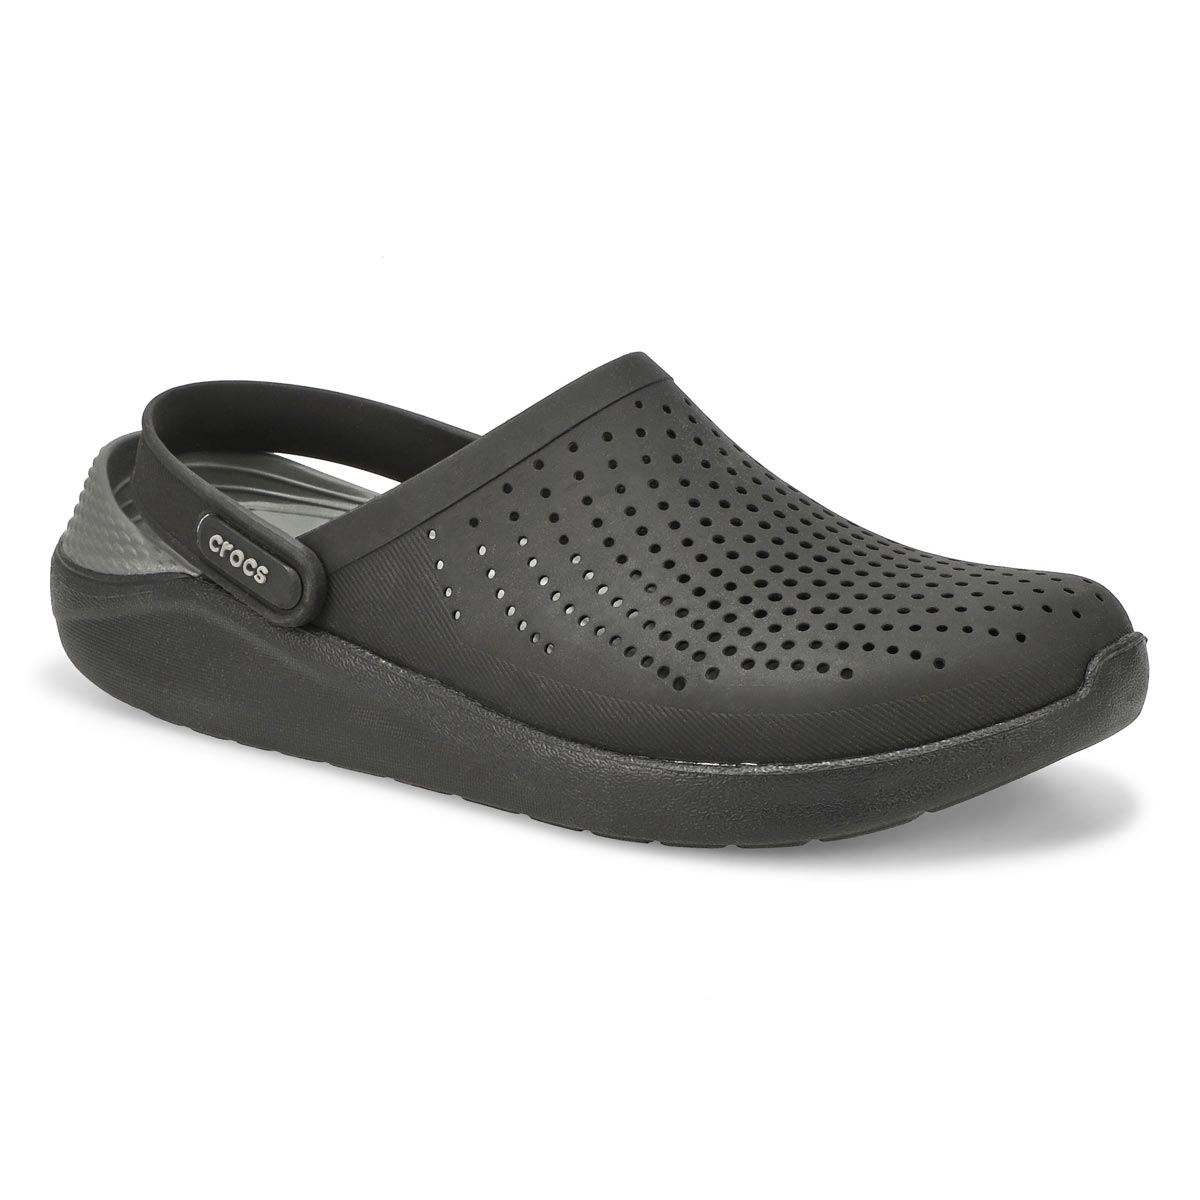 Men's LITERIDE black/slate clogs